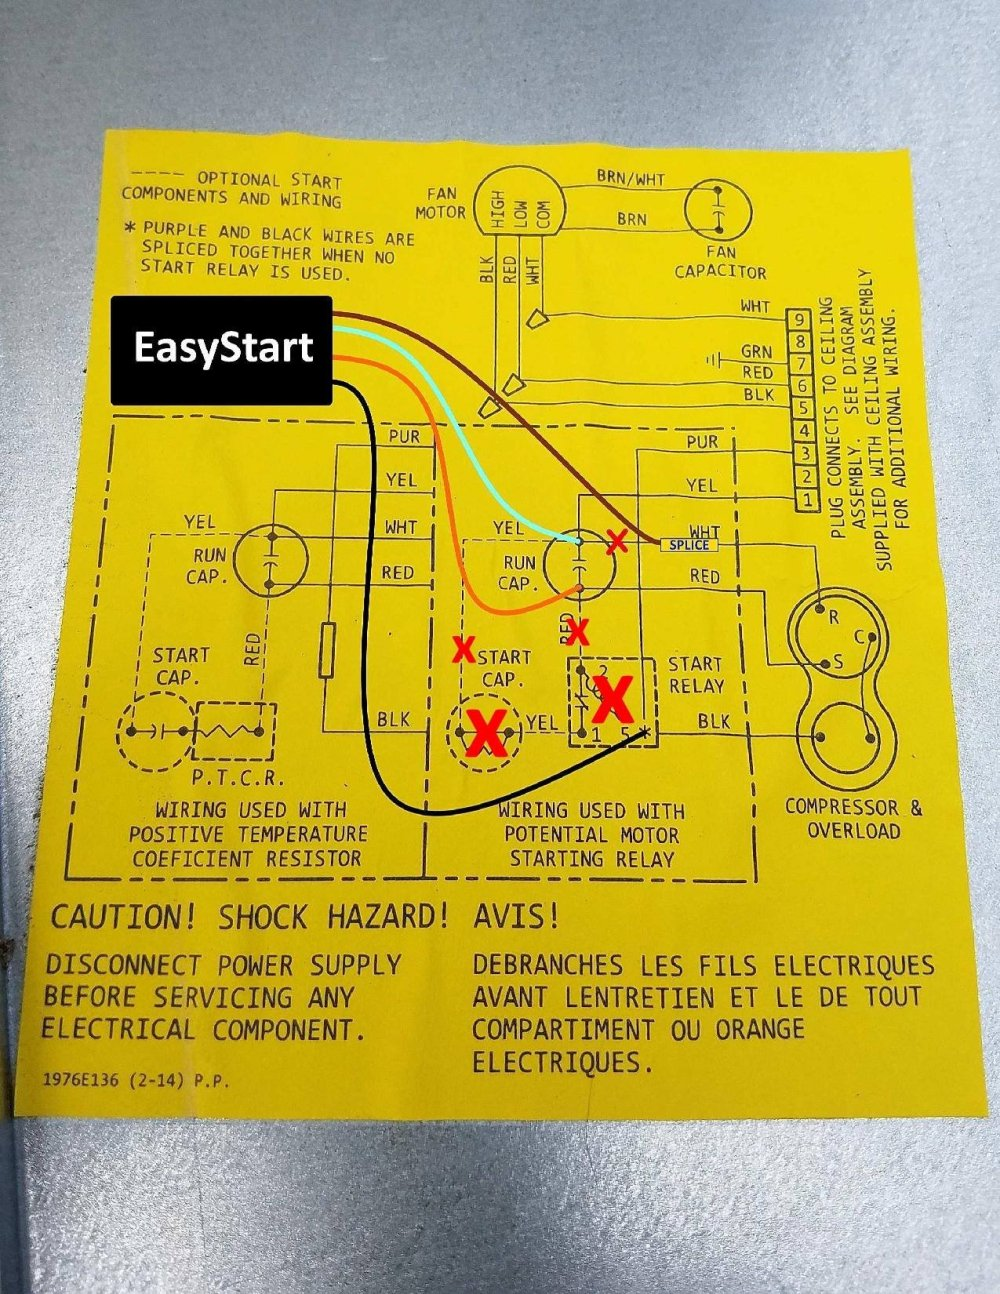 medium resolution of rv easystart soft starter wiring diagrams resource page micro aircoleman mach 1 easystart 364 wiring